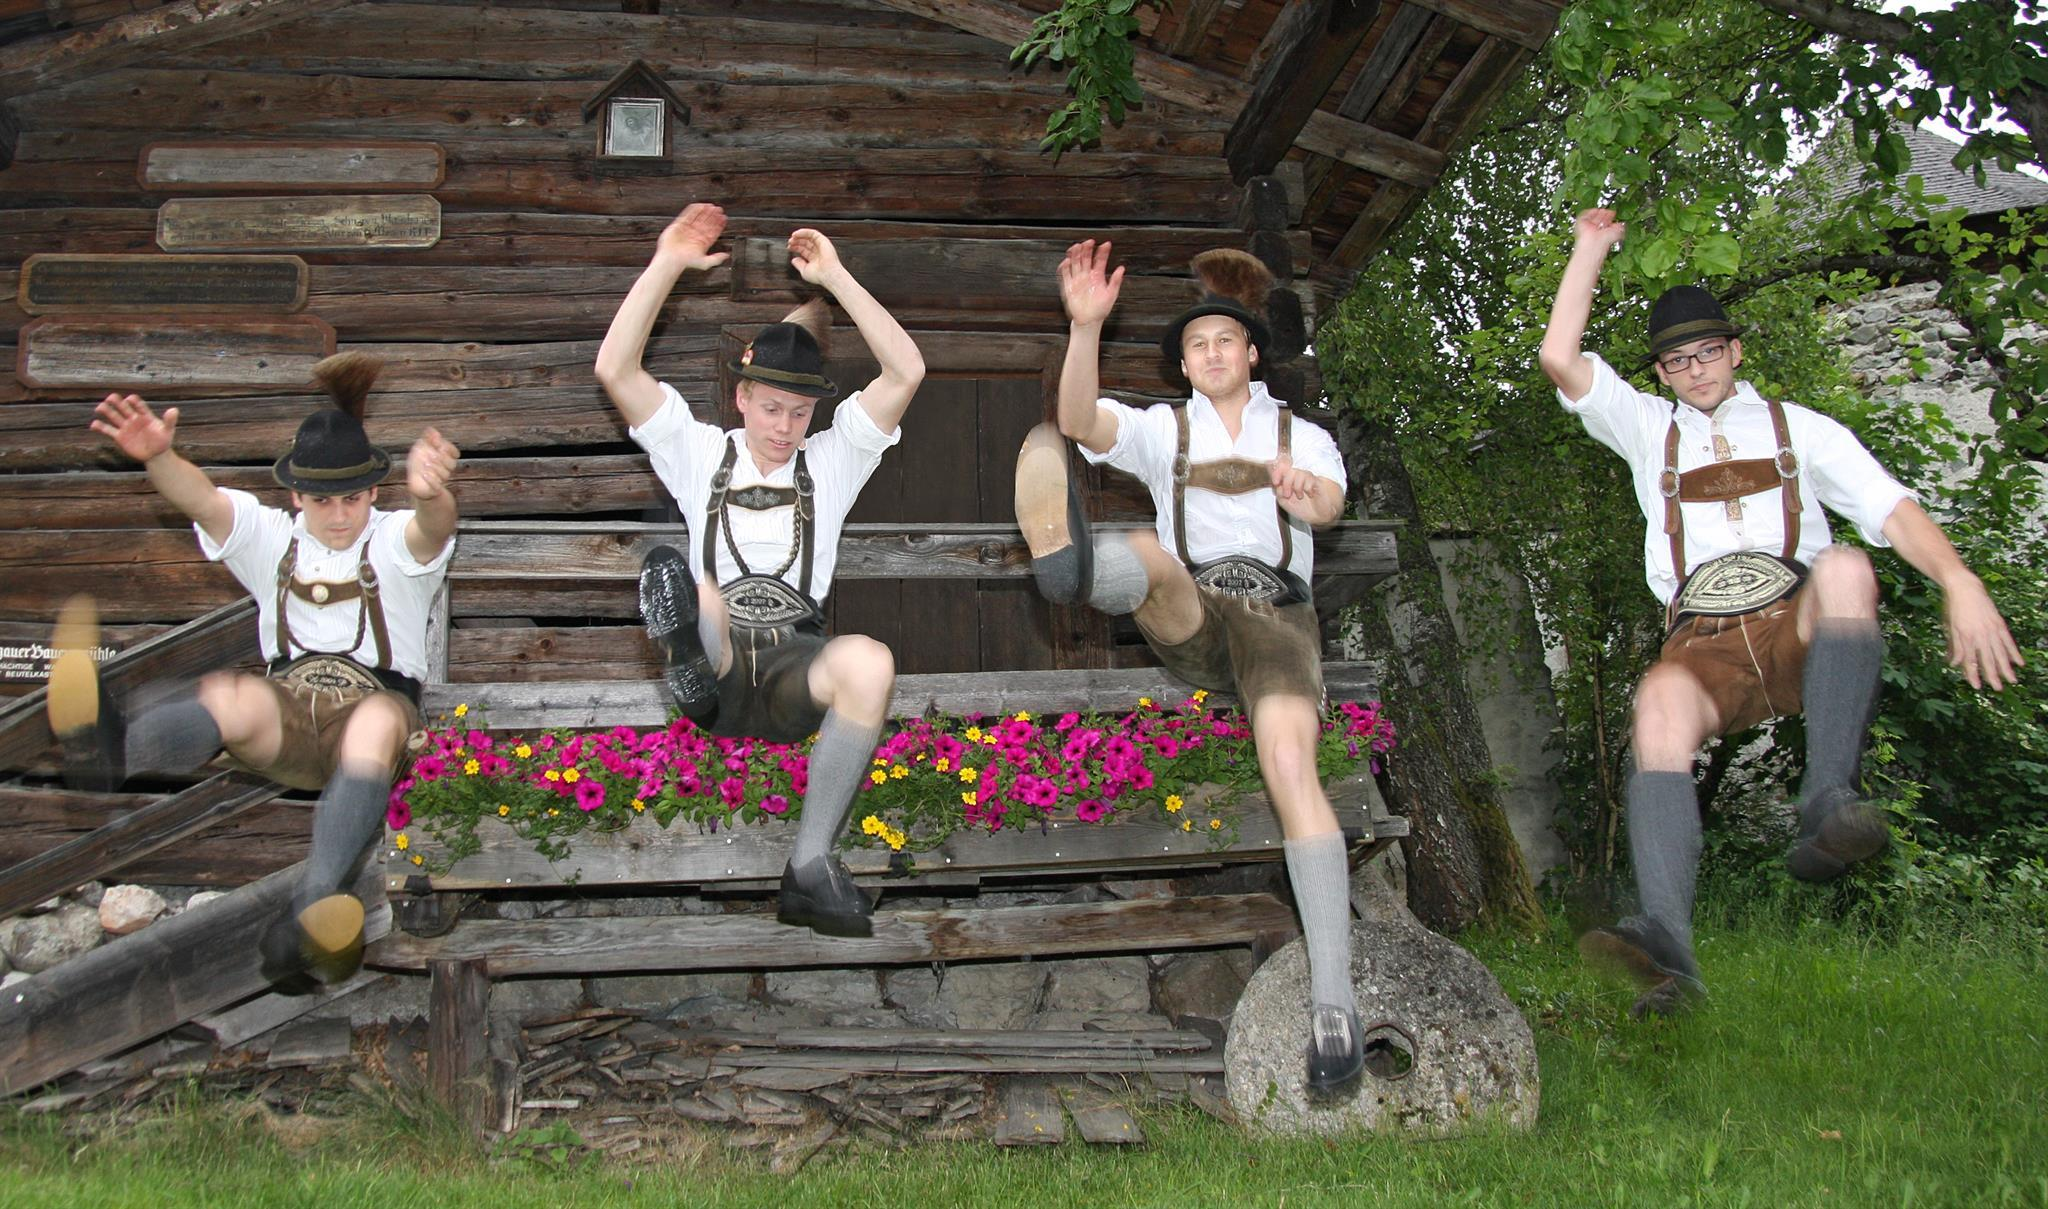 Traditional evening at the castle Kaprun - 04/08/2020, from 8:00 PM